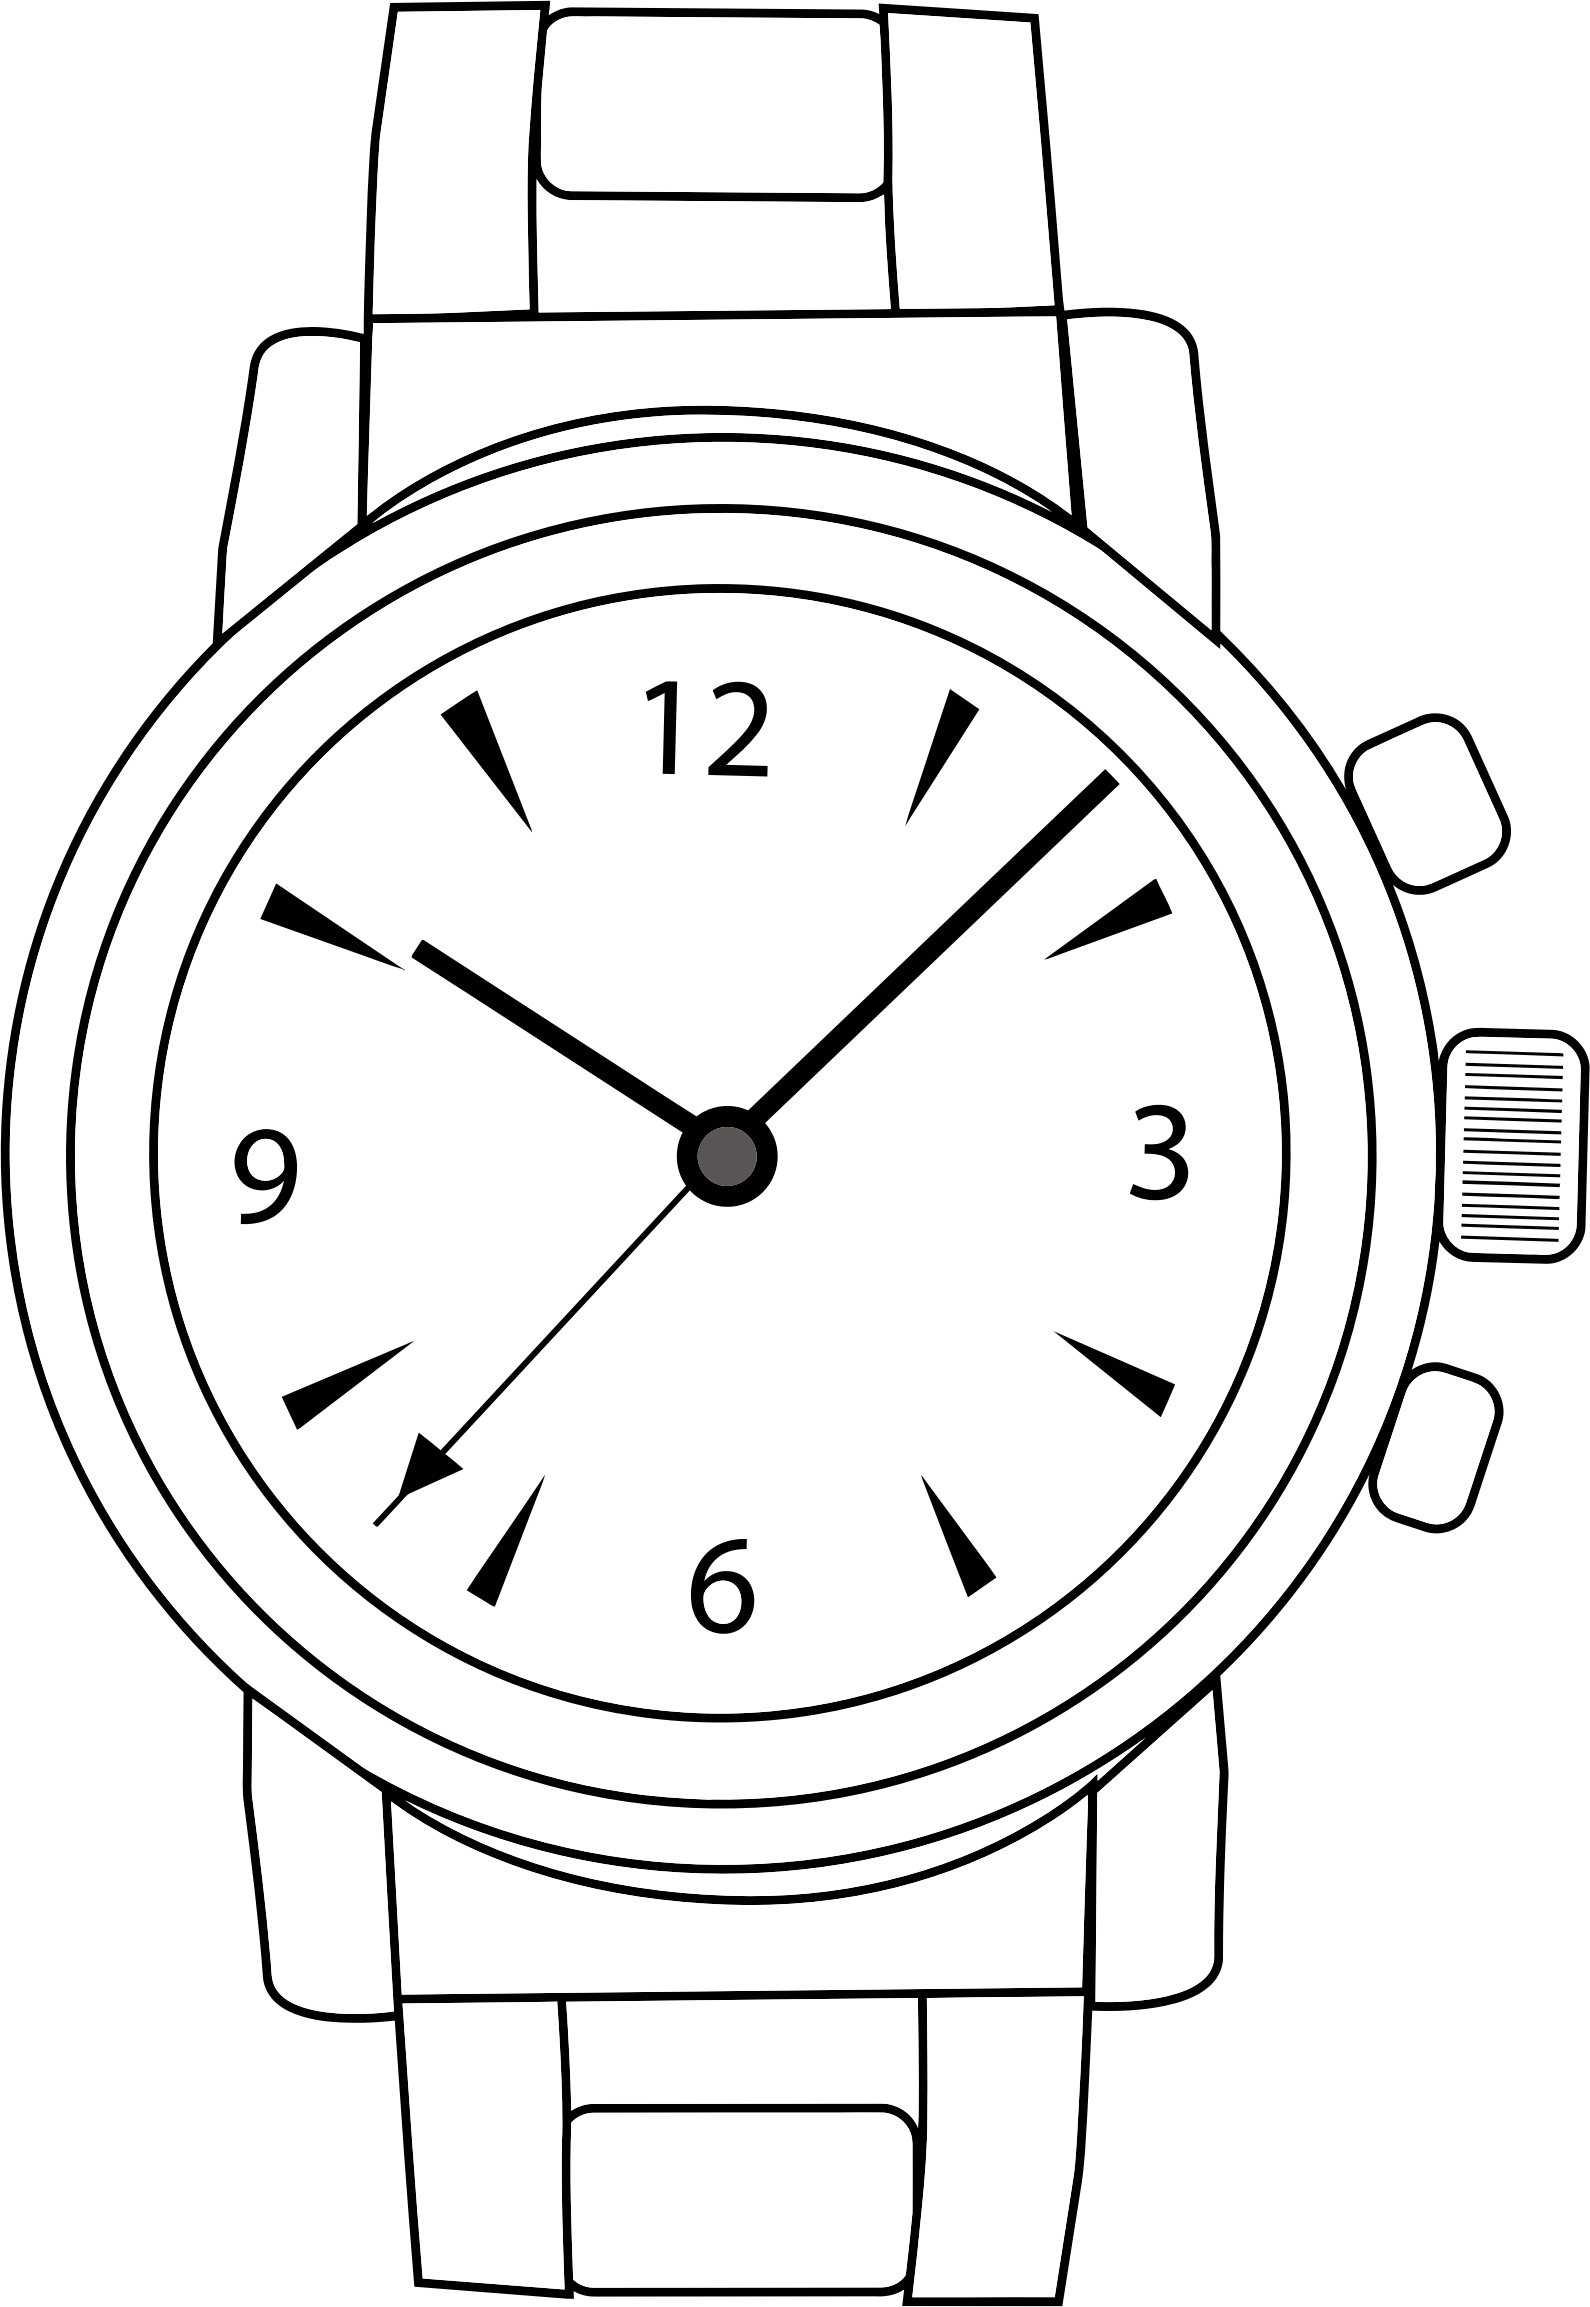 Wrist watch clipart black and white.